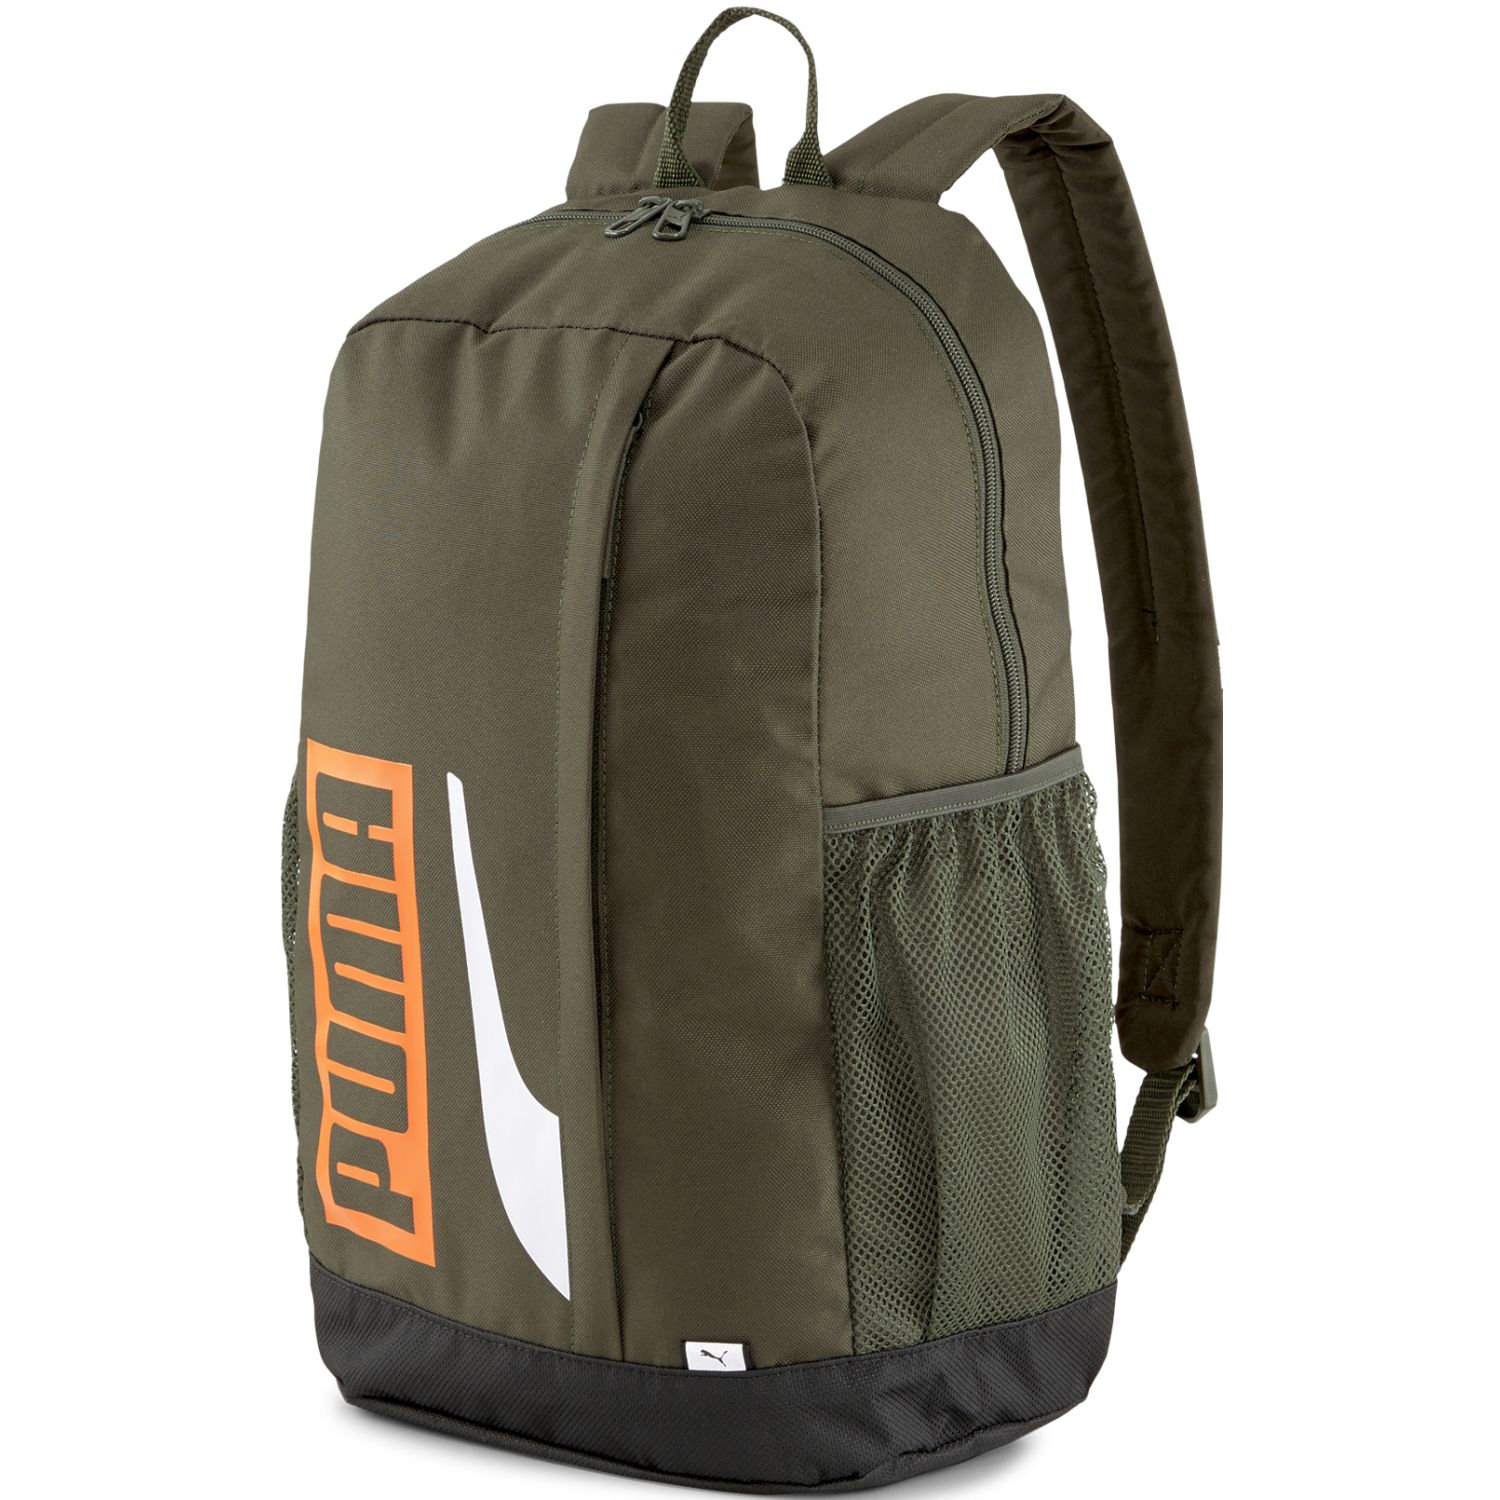 Puma Puma Plus Backpack Ii VERDE OLIVO Mochilas Multipropósitos